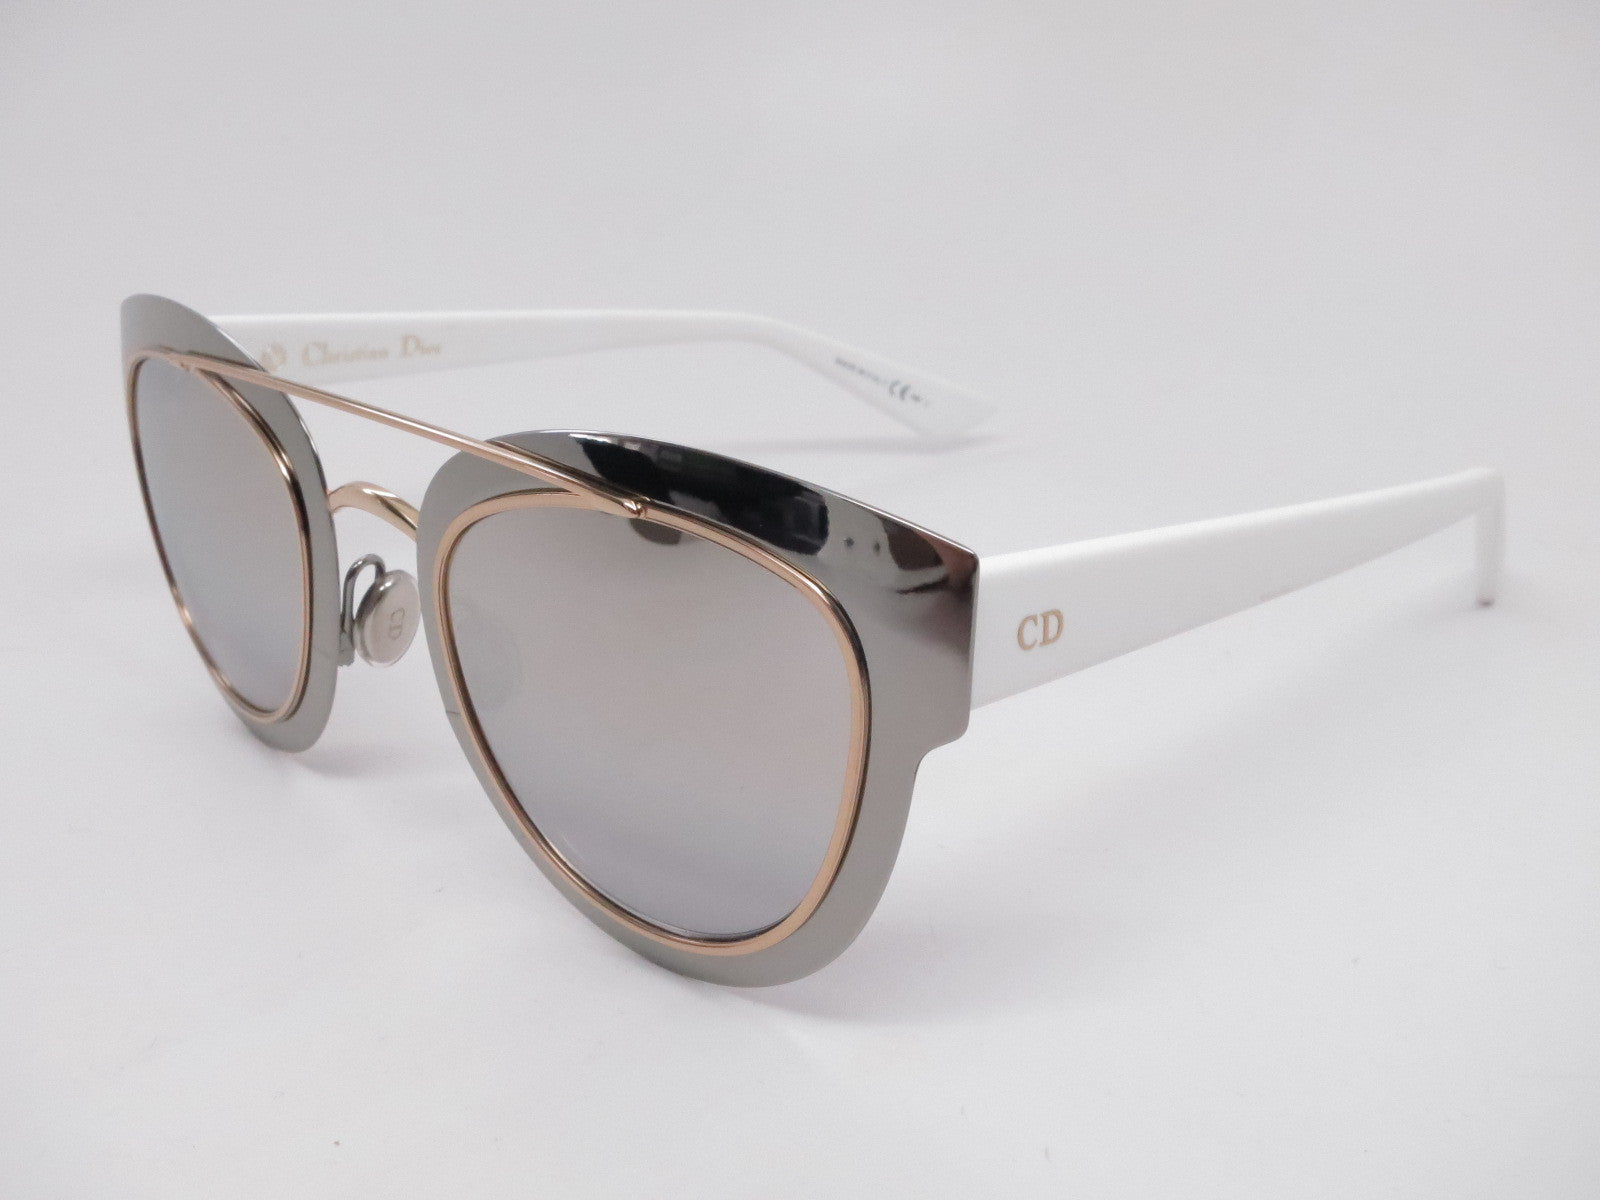 832941b60d Dior Chromic LMJ96 Ruthenium Gold White Sunglasses - Eye Heart Shades